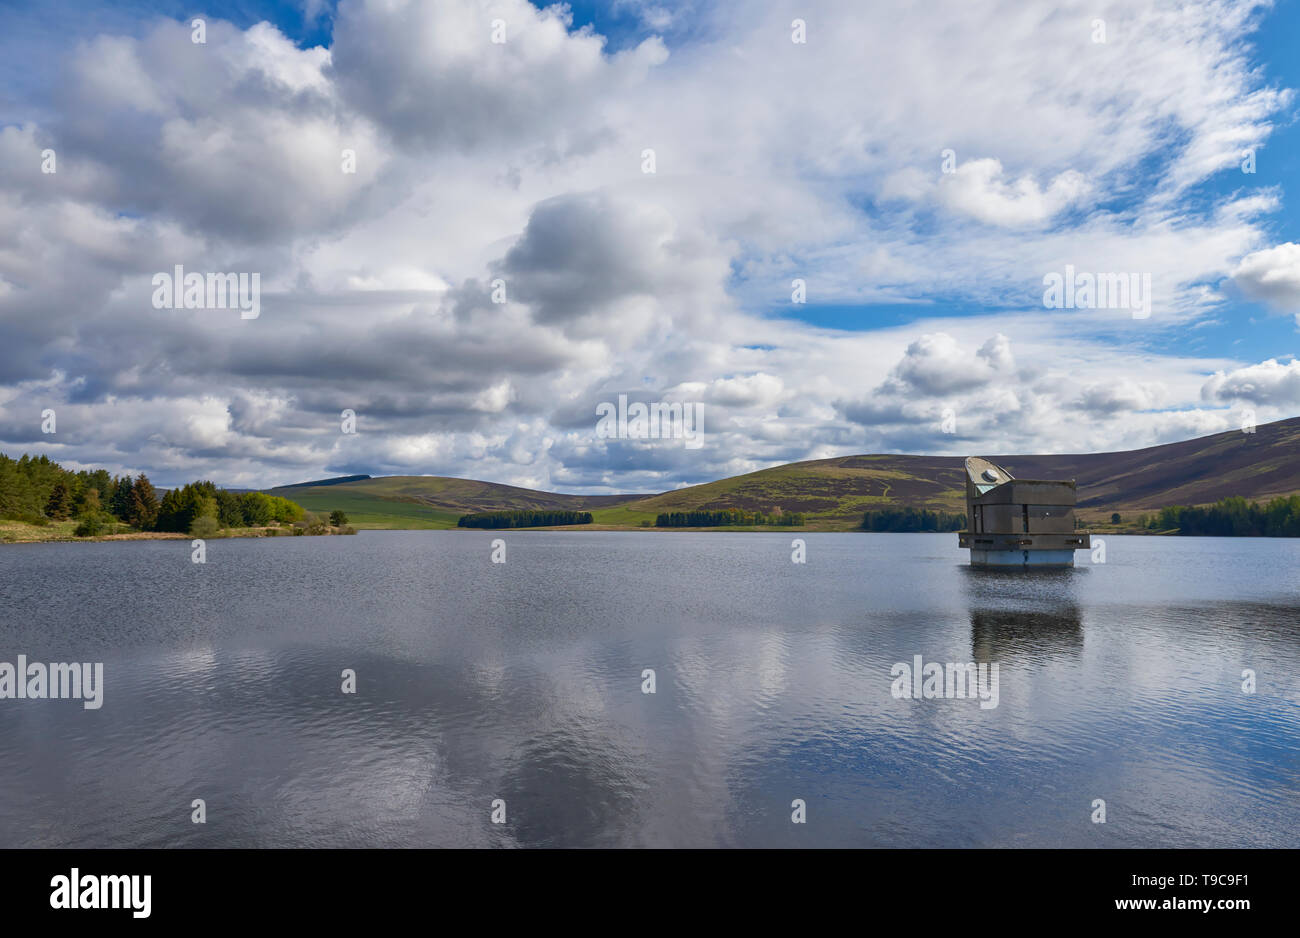 The Pumping House at Backwater Reservoir in Northern Angus, near to Kirriemuir, supplying water since 1969 to Angus. Scotland. - Stock Image